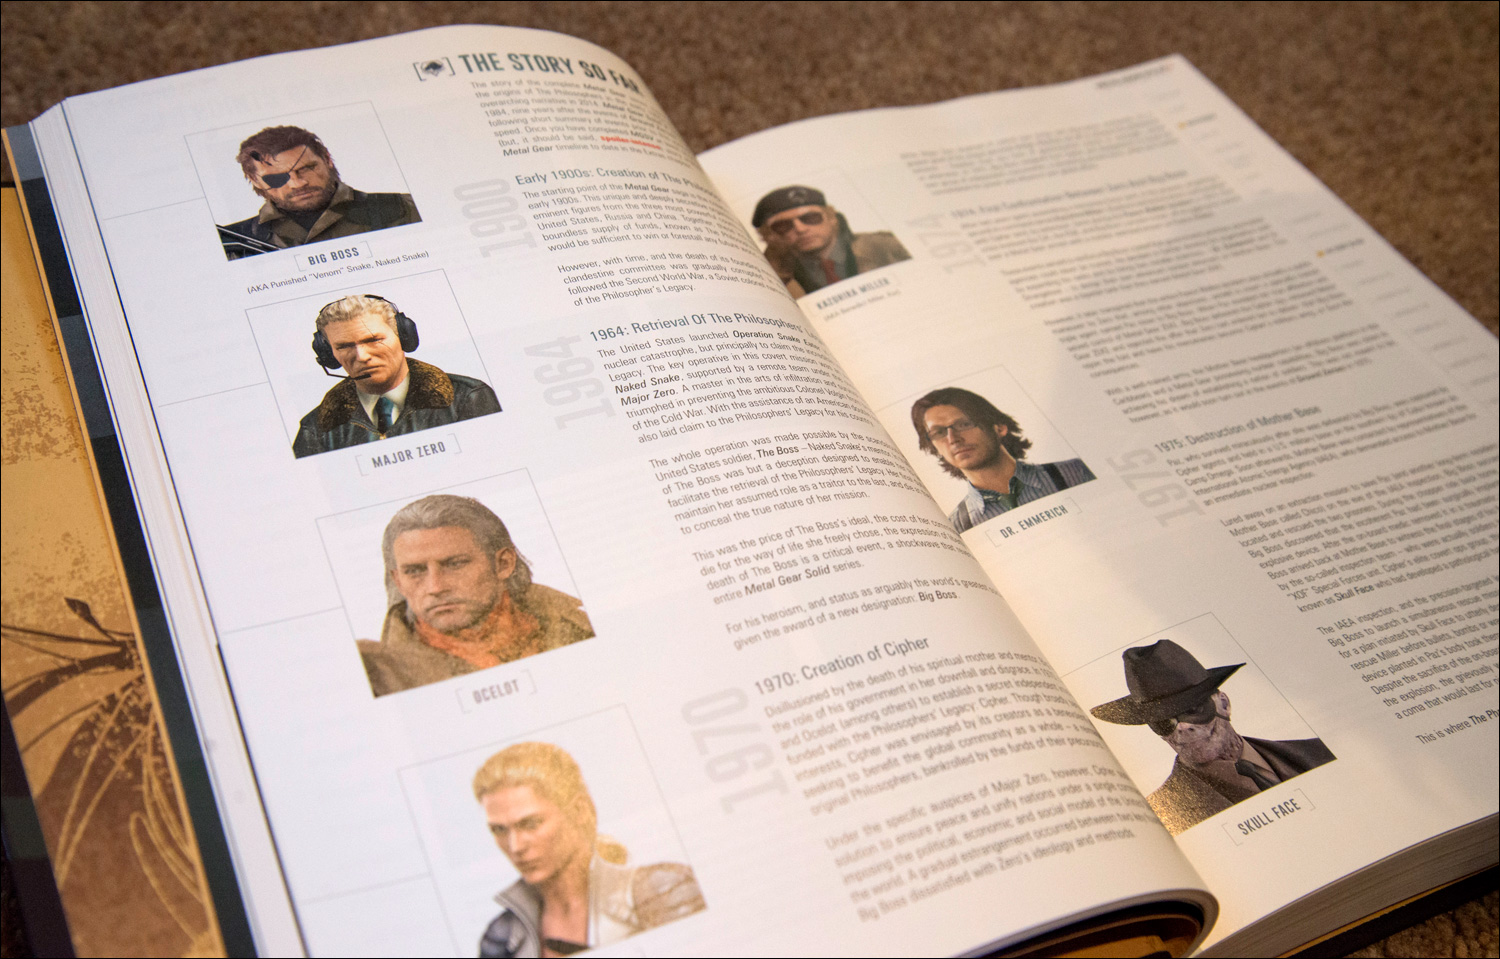 Metal-Gear-Solid-V-The-Phantom-Pain-Collector's-Edition-Guide-Story-So-Far